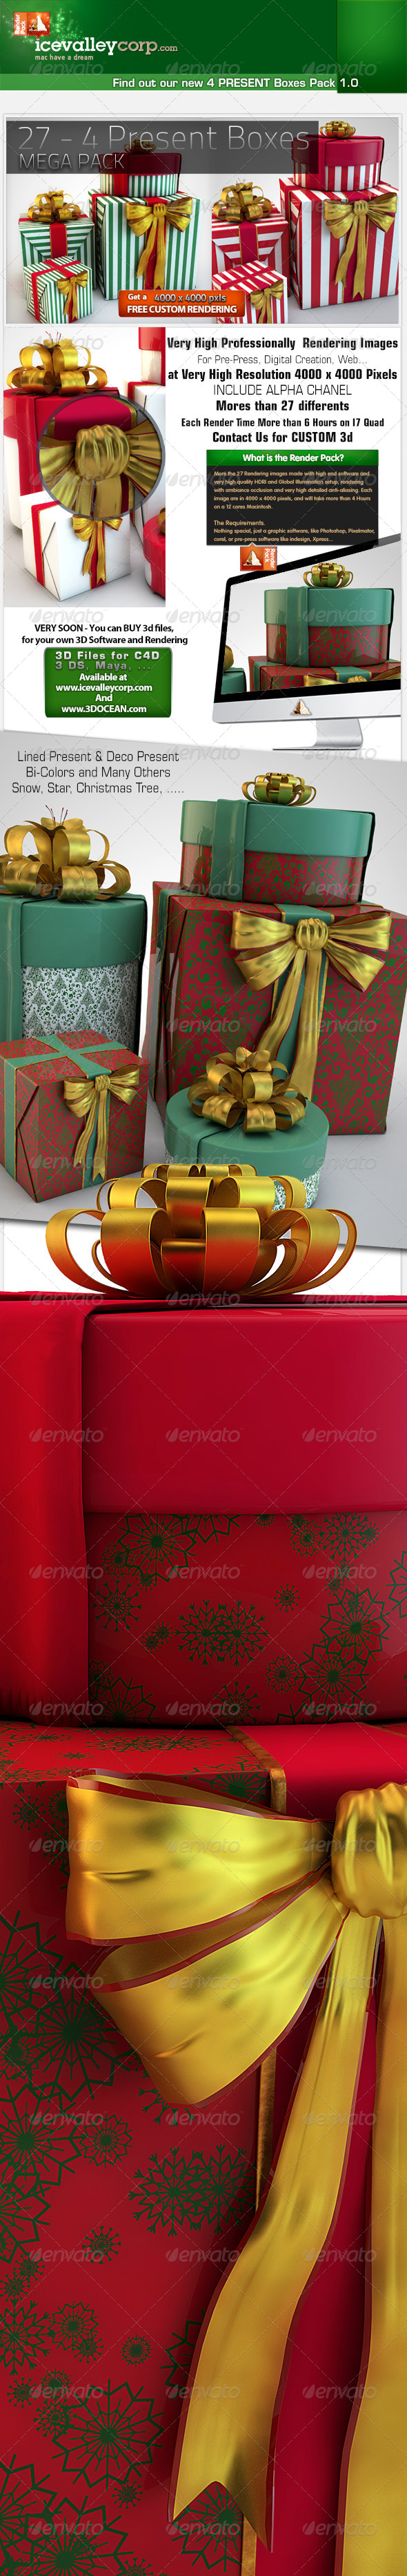 27th - 4 Present Boxes in HirRes - 3D Backgrounds